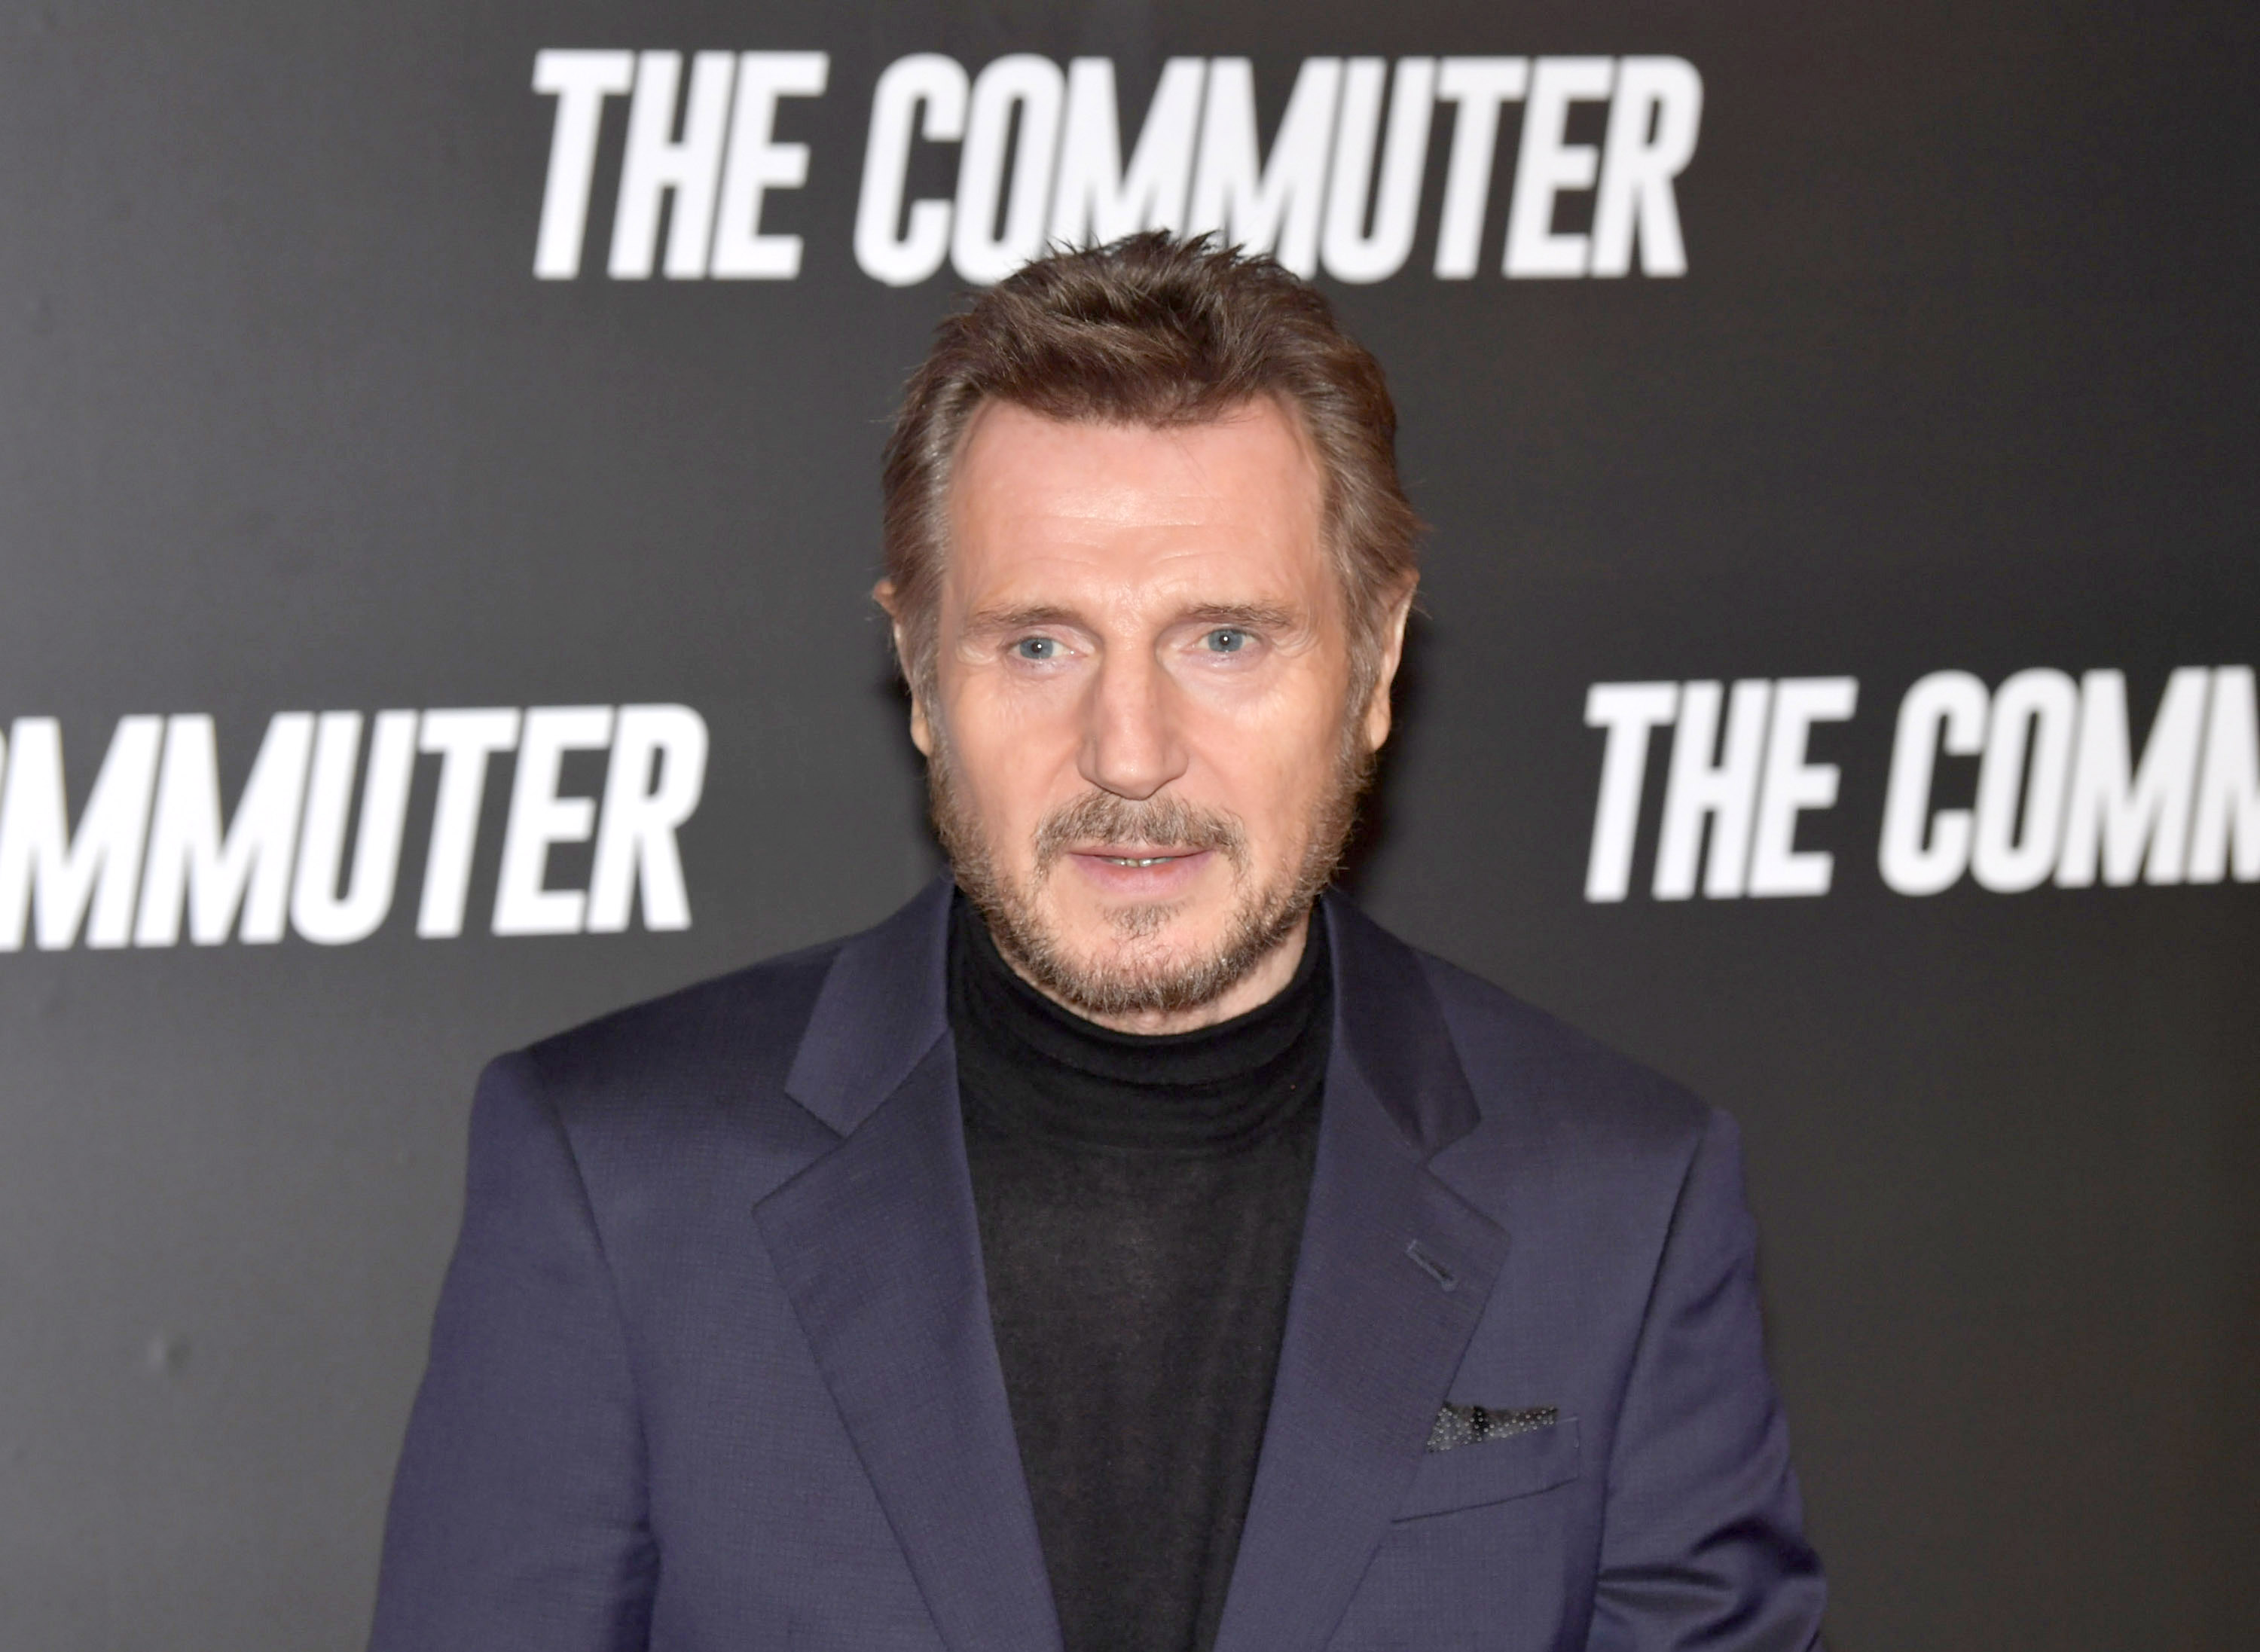 Gala screening of 'The Commuter' at the Cineworld Dublin in Dublin, Ireland.  Featuring: Liam Neeson Where: Dublin, Leinster, Ireland When: 12 Jan 2018 Credit: Brightspark Photos/WENN.com